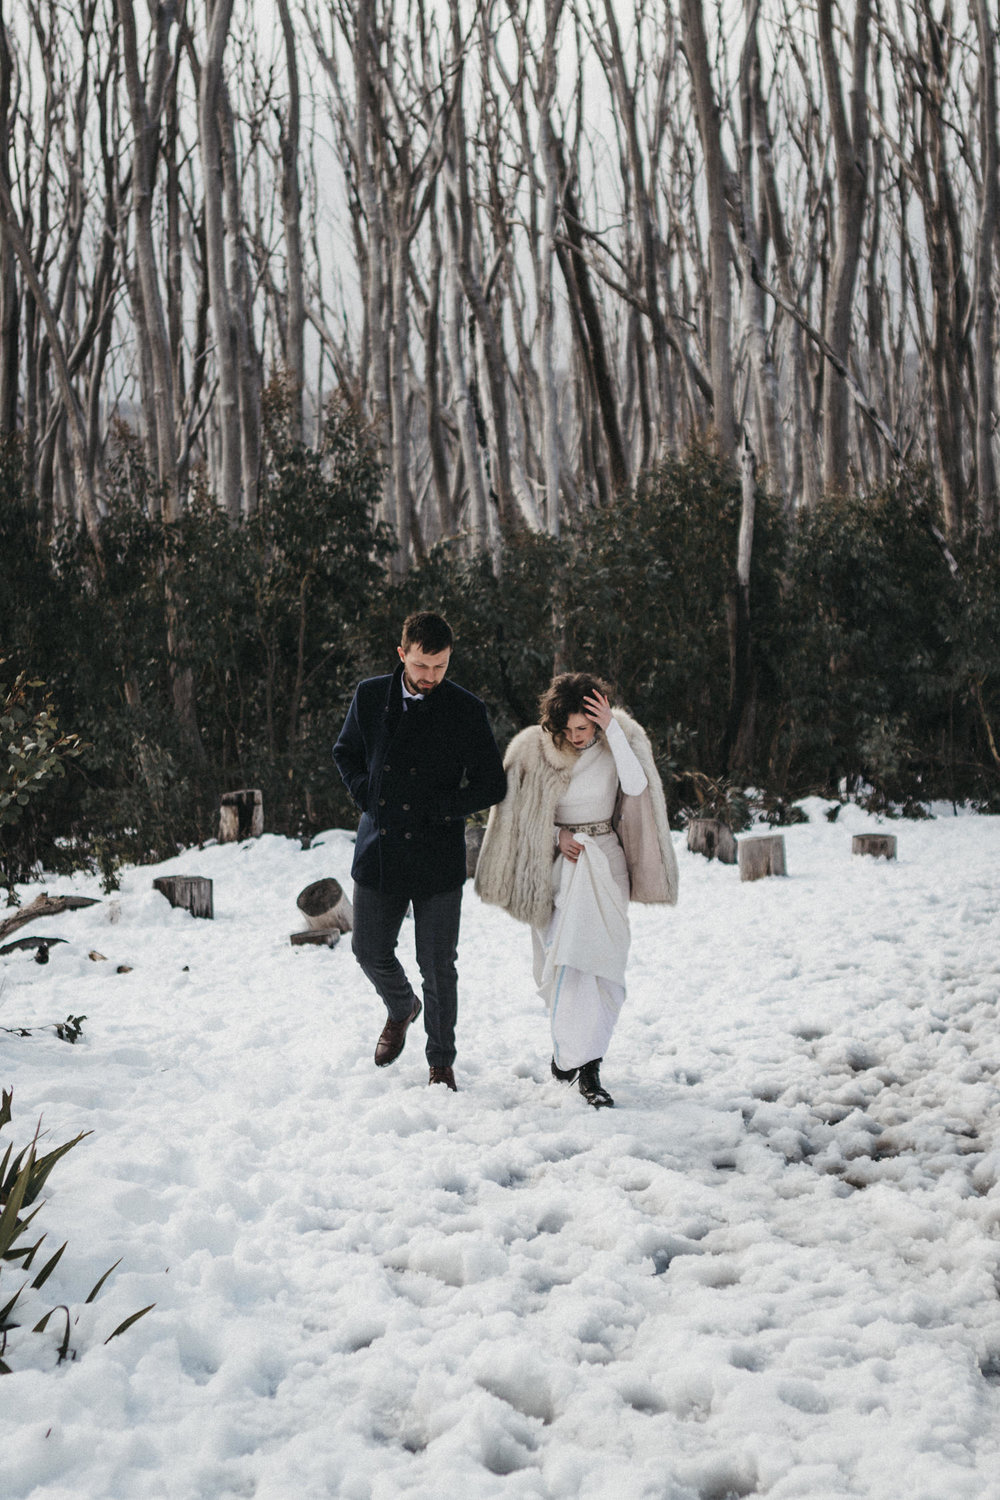 Winter_Elopement_Amie_Nick_Anna_Taylor_098-185A2359.jpg